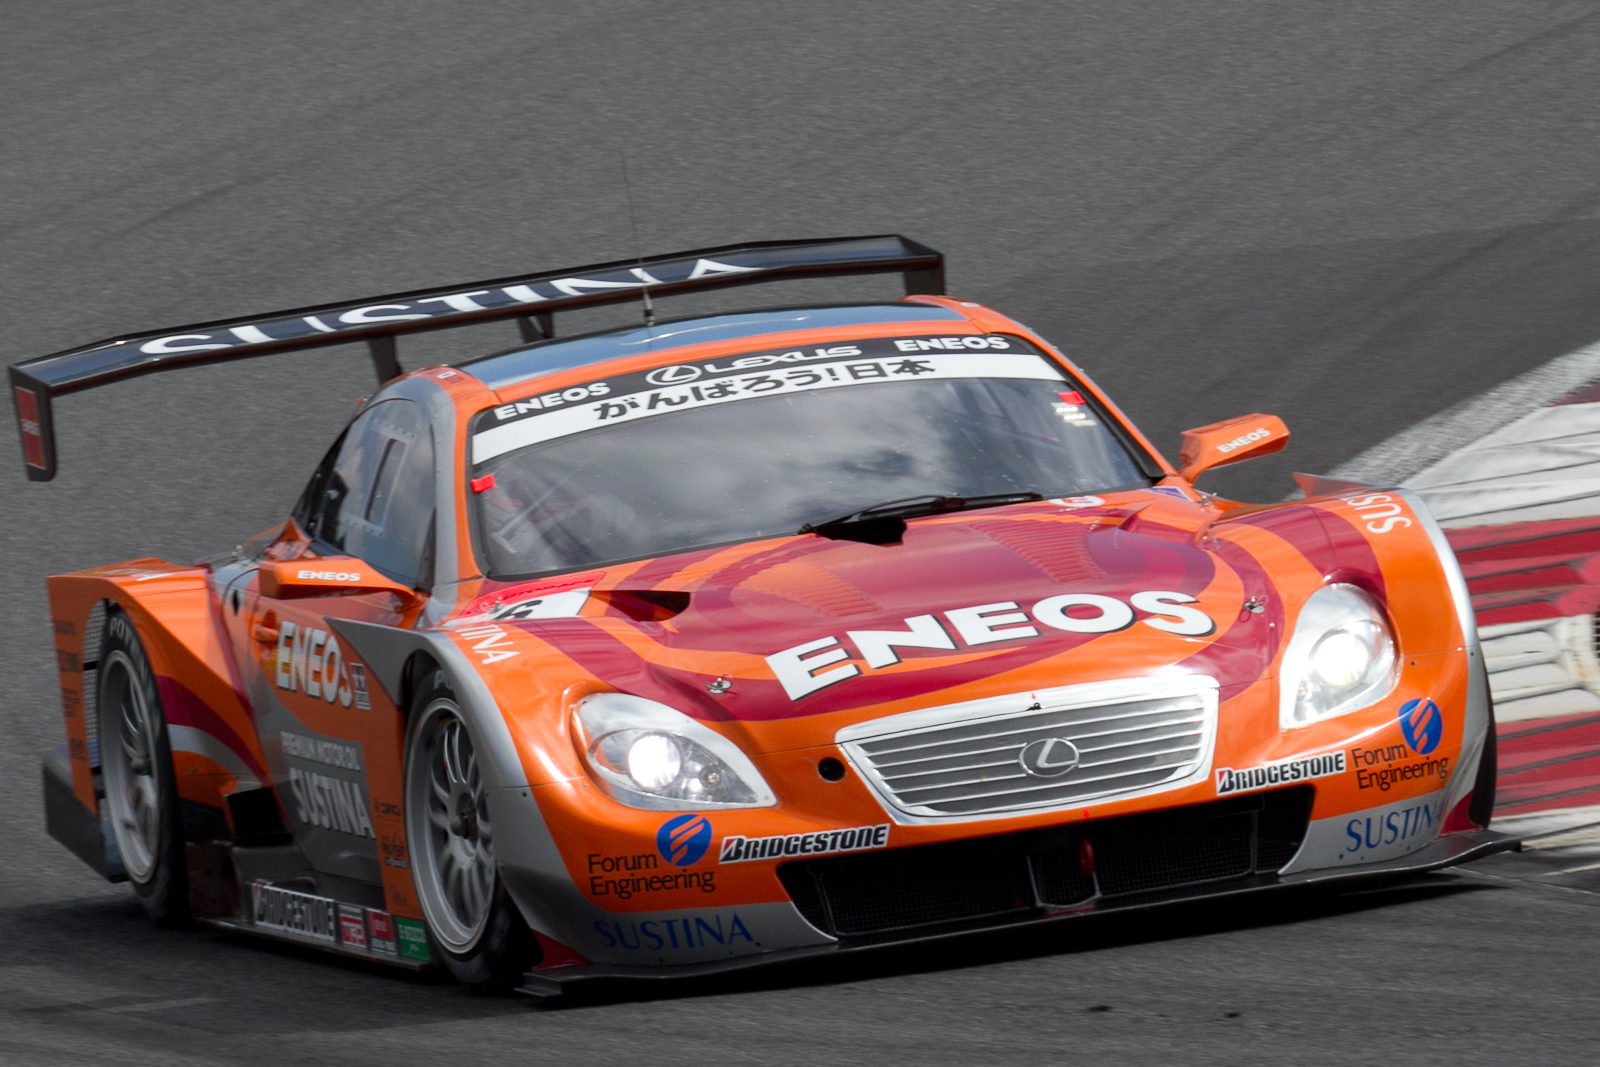 Race Car Driving >> File:ENEOS Sustina SC430 2011 Super GT Fuji 250km.jpg - Wikimedia Commons